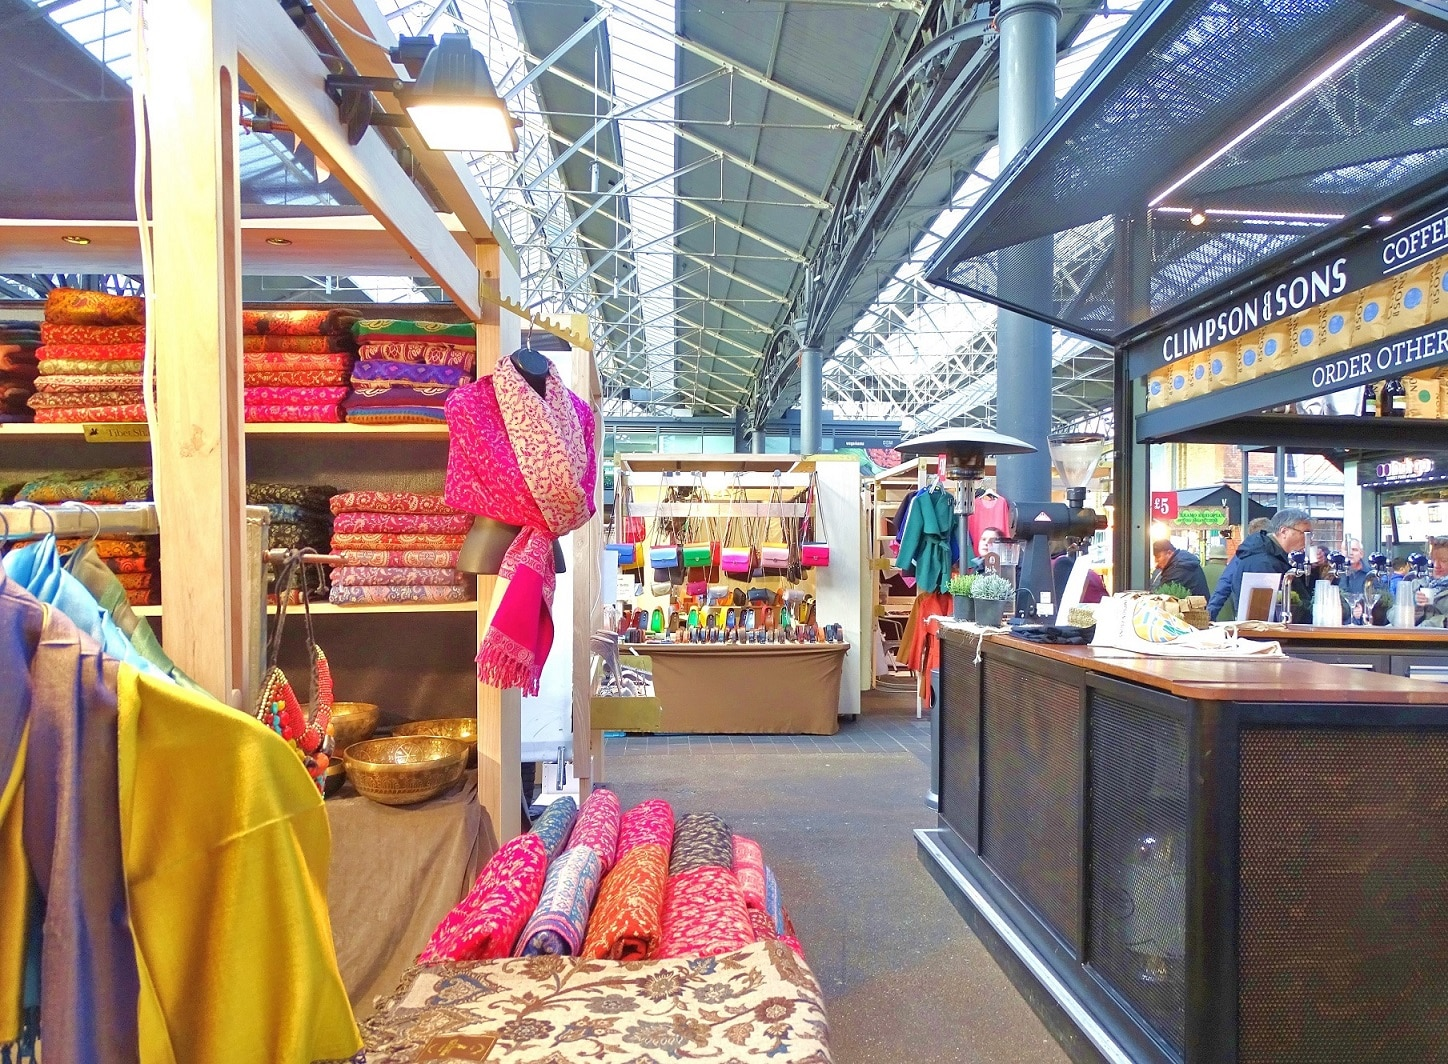 Find food, fashion and vintage items at Old Spitalfields Market